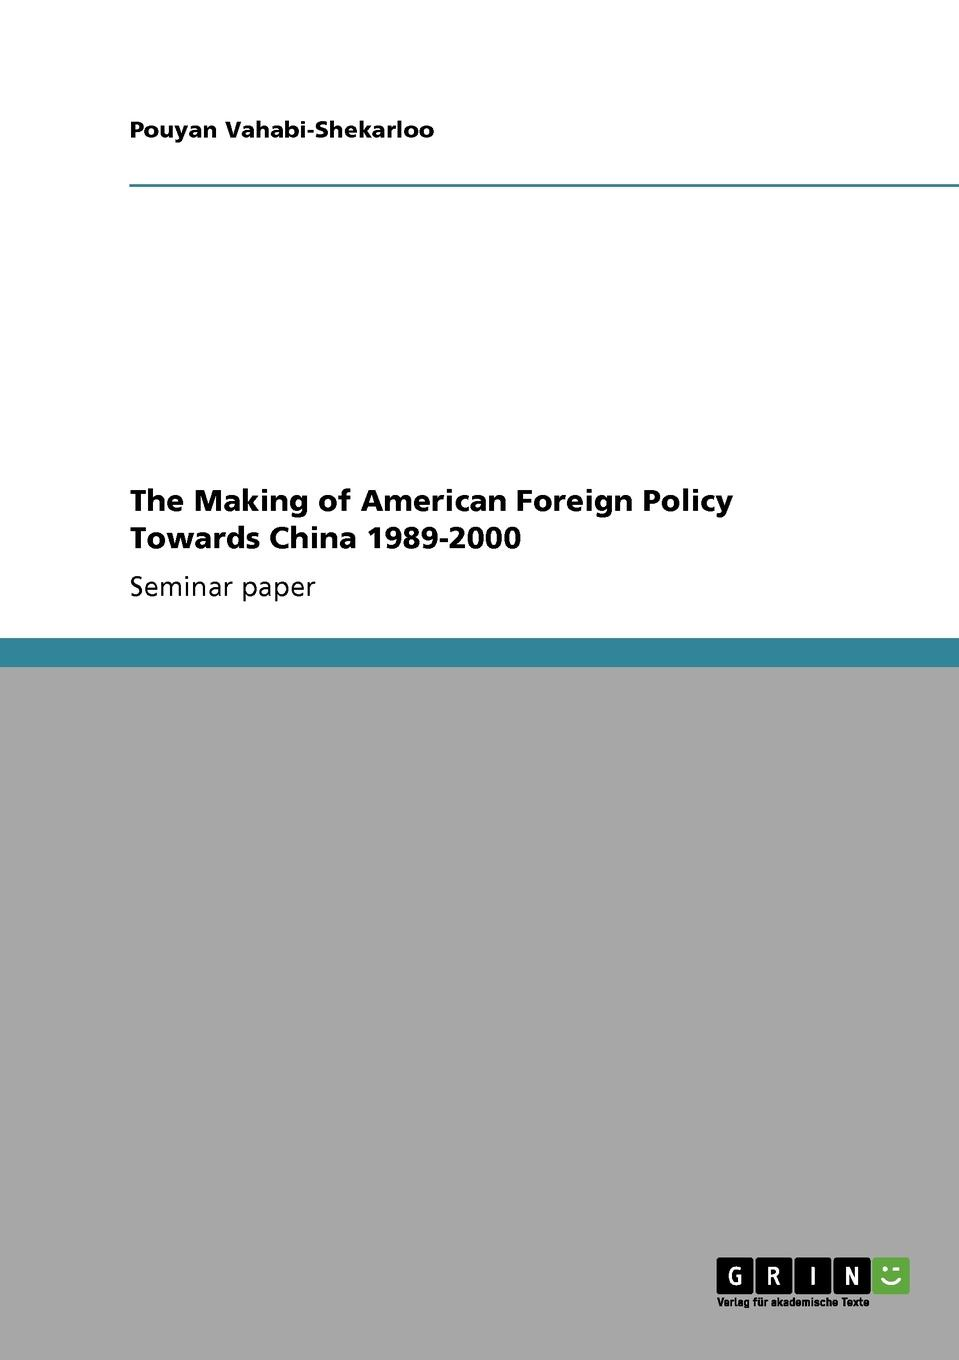 Pouyan Vahabi-Shekarloo The Making of American Foreign Policy Towards China 1989-2000 britta meys the role of human rights in contemporary u s foreign policy towards china